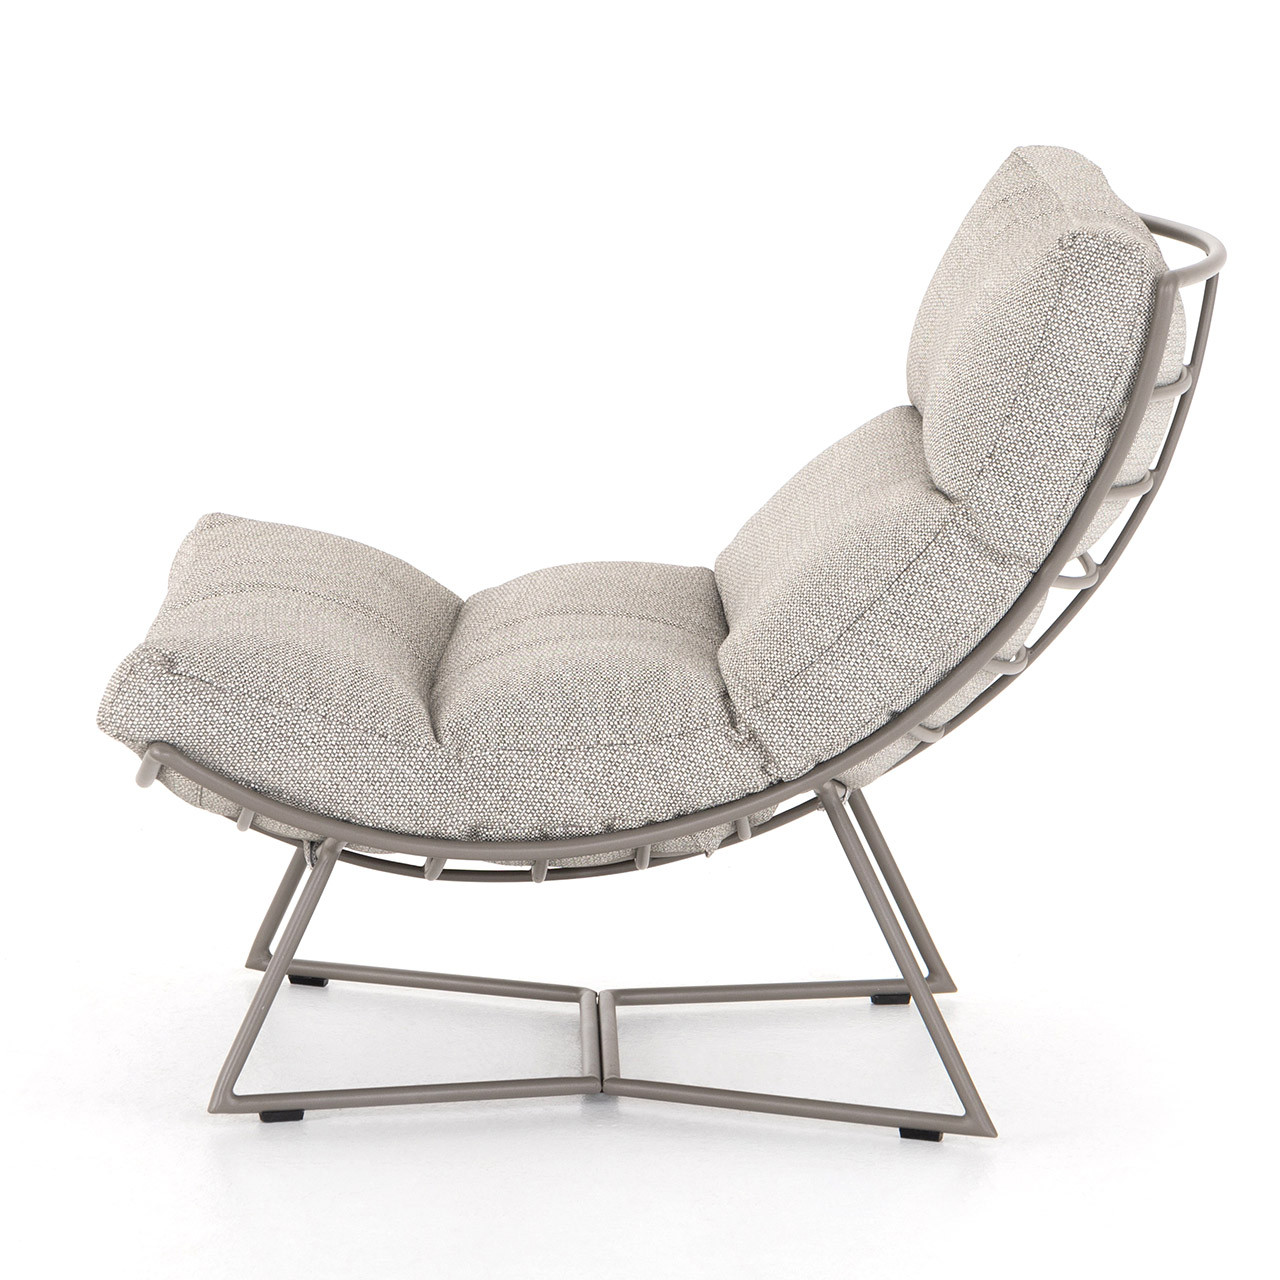 Womb Outdoor Chair